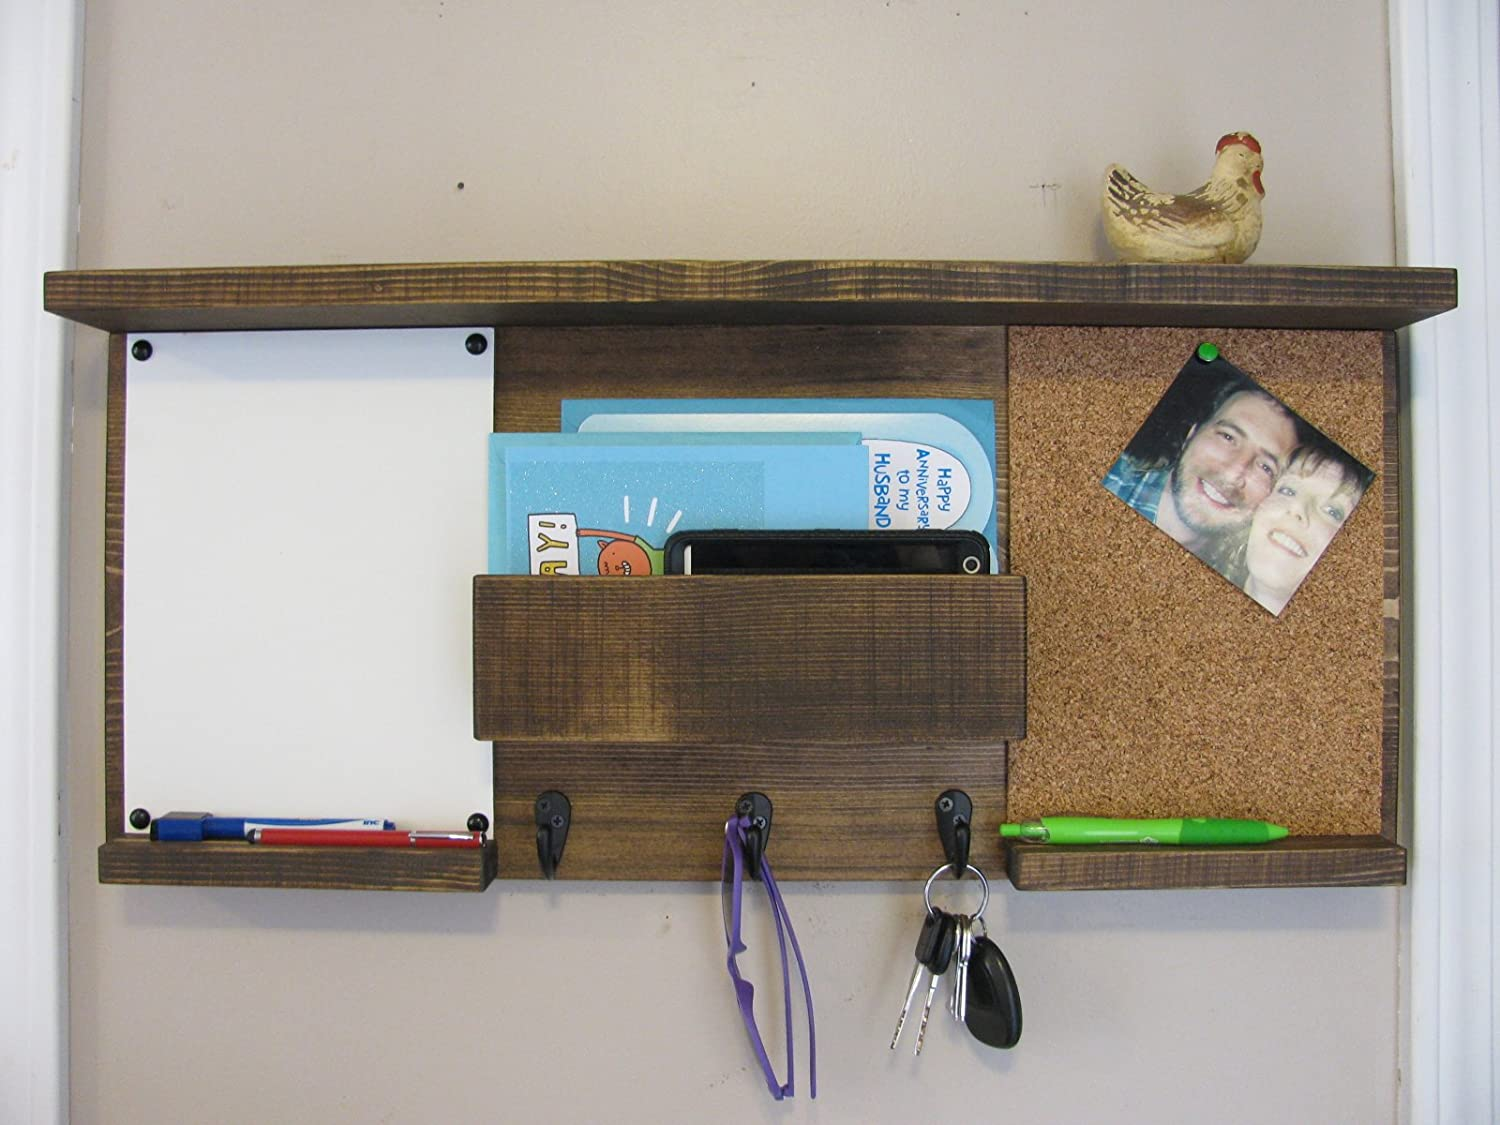 Dual Mail Organizer with Shelf, Cork Board and White Board, Mail Holder, Mail Organizer, Dual Message Board